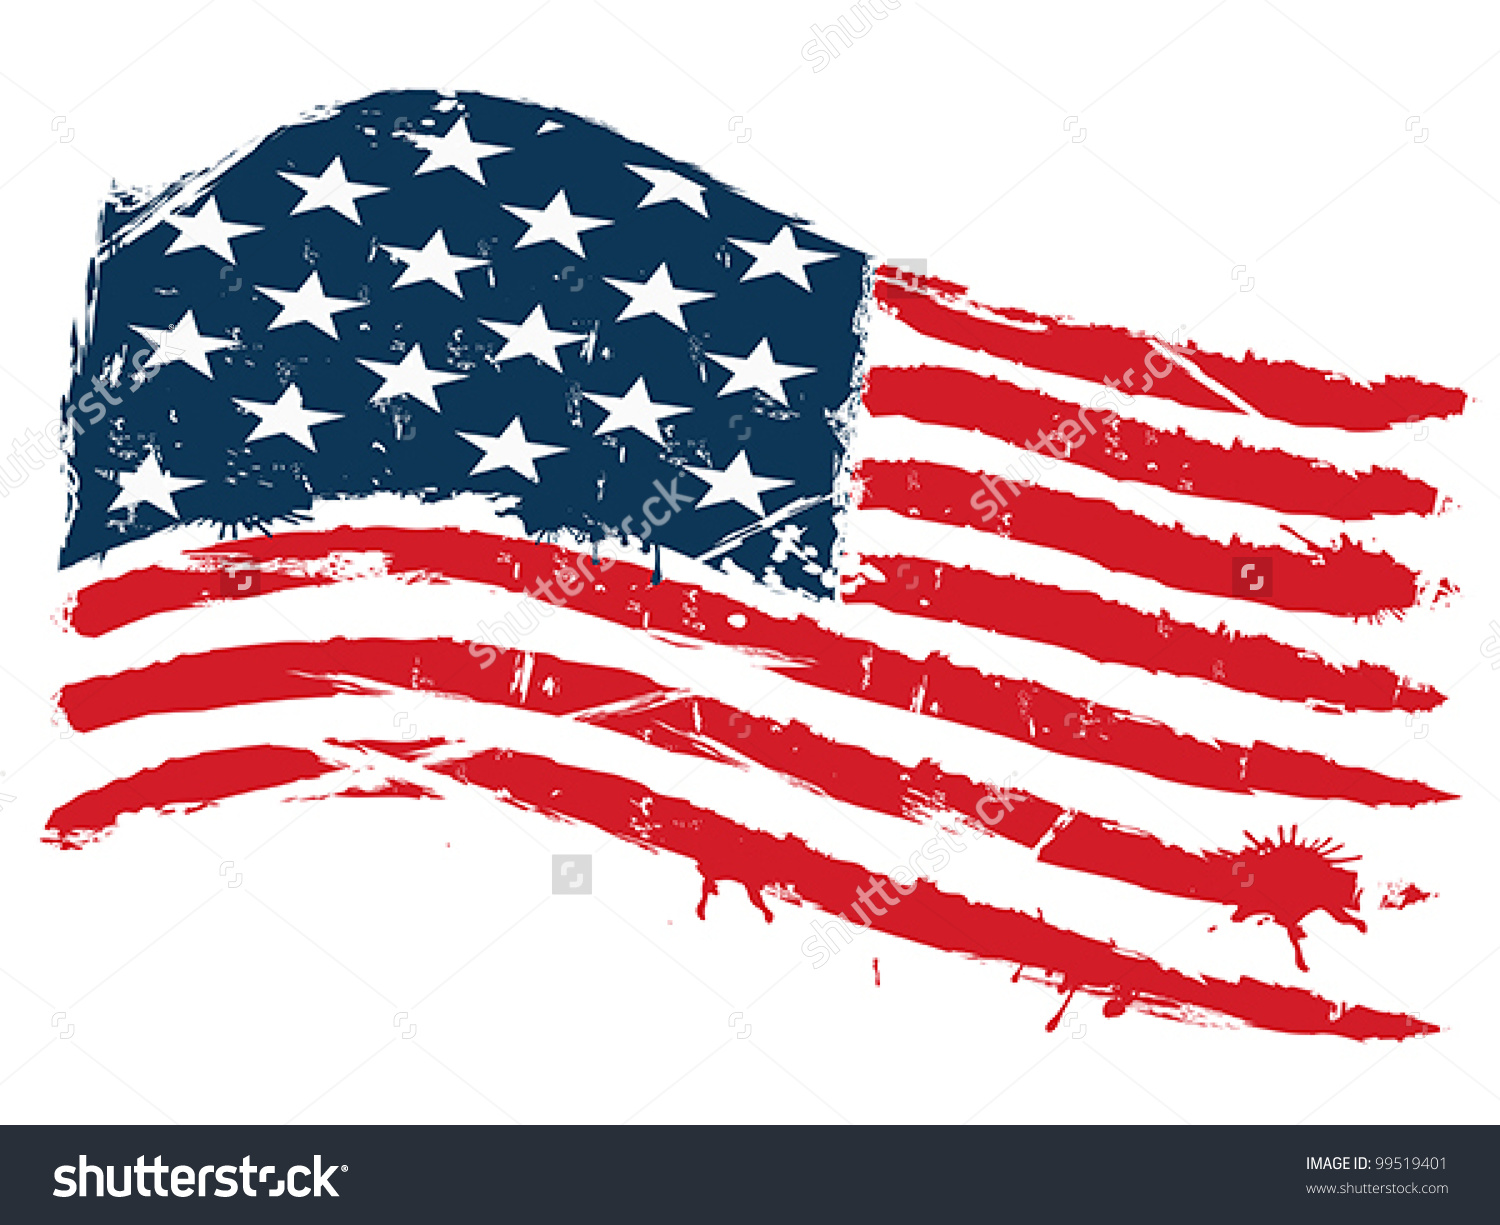 Us flag clipart vector png royalty free library Distressed us flag clipart - ClipartFest png royalty free library